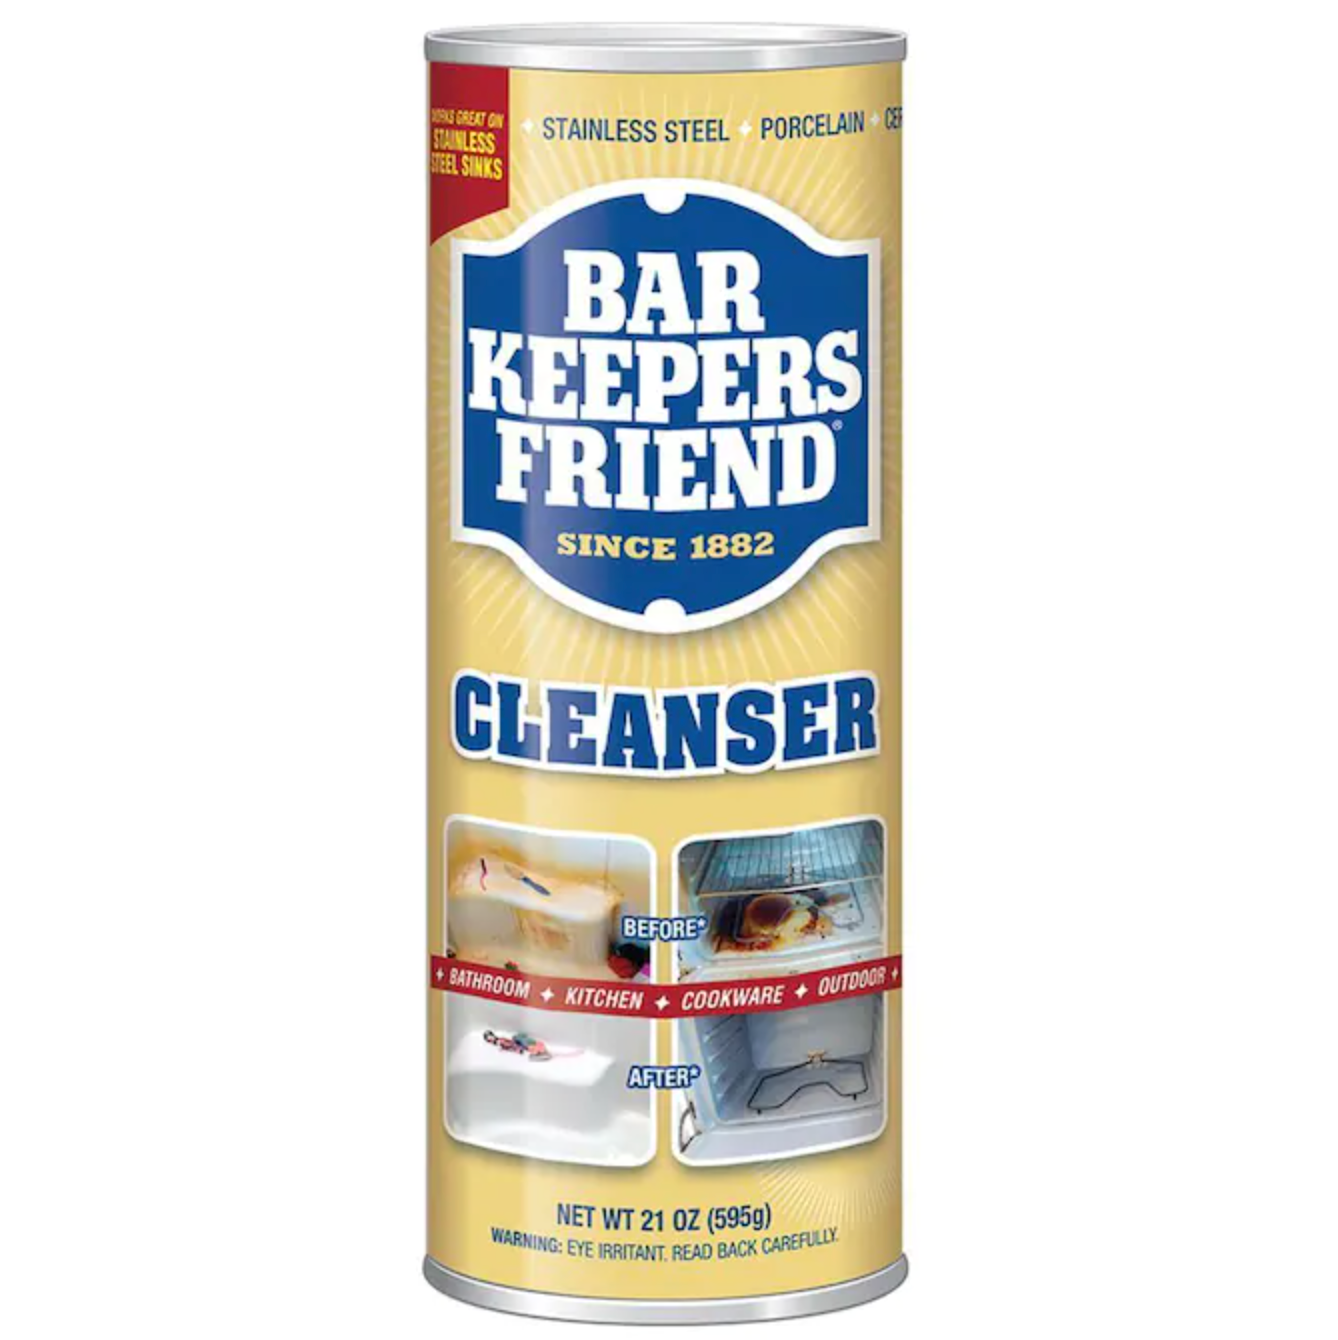 container of Bar Keeper's Friend cleanser